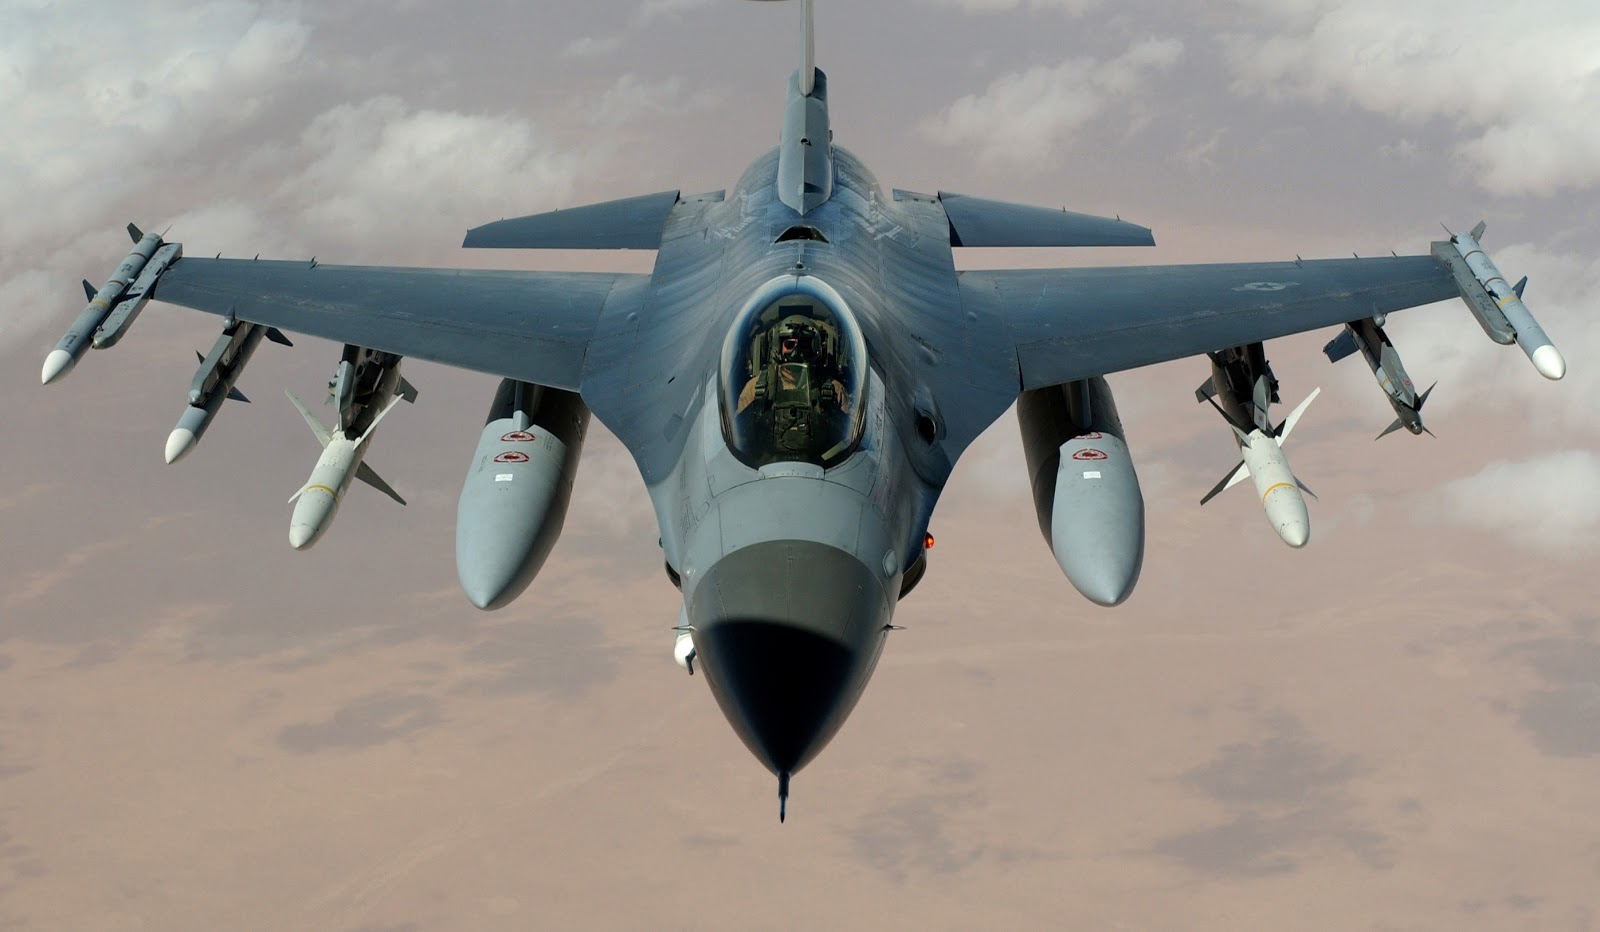 US To Upgrade F-16 Jet Fighters With Infrared Missile Warning Systems